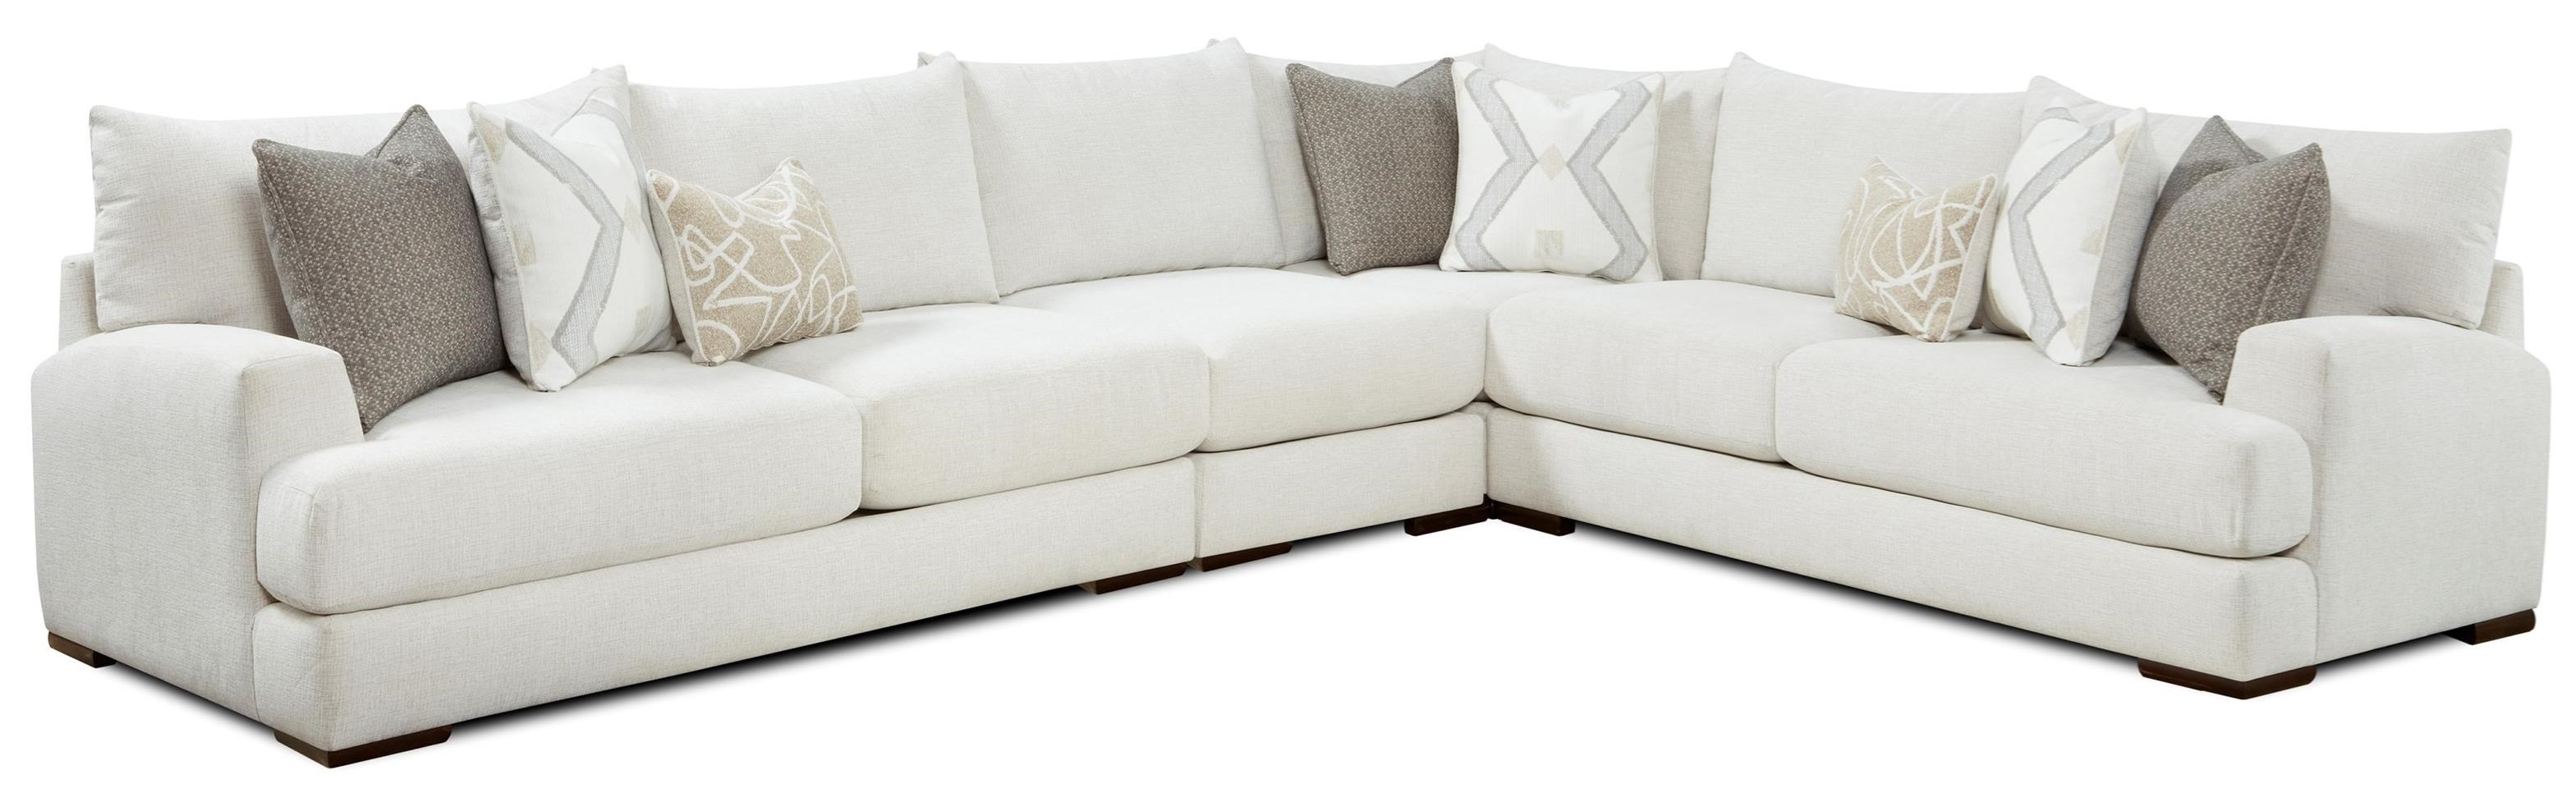 51-00 4-Piece Sectional by Fusion Furniture at Furniture Superstore - Rochester, MN